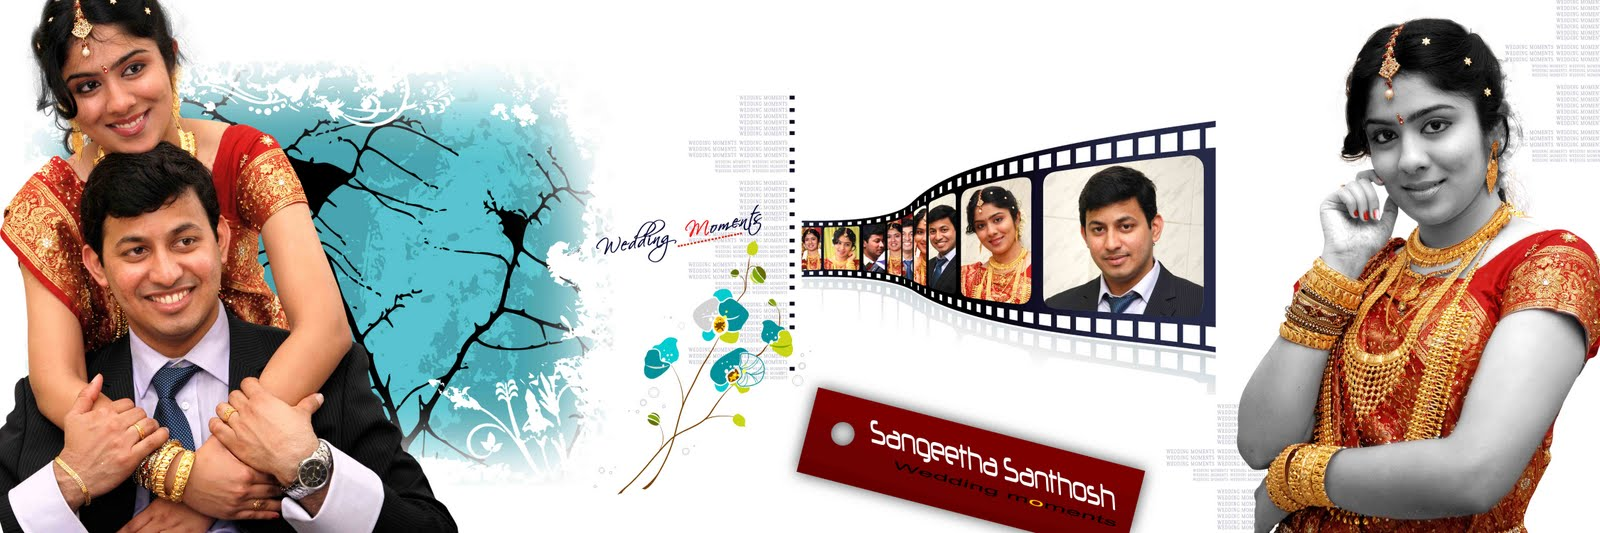 Images Of Book And Wedding Album Templates Digital Photo Wallpaper